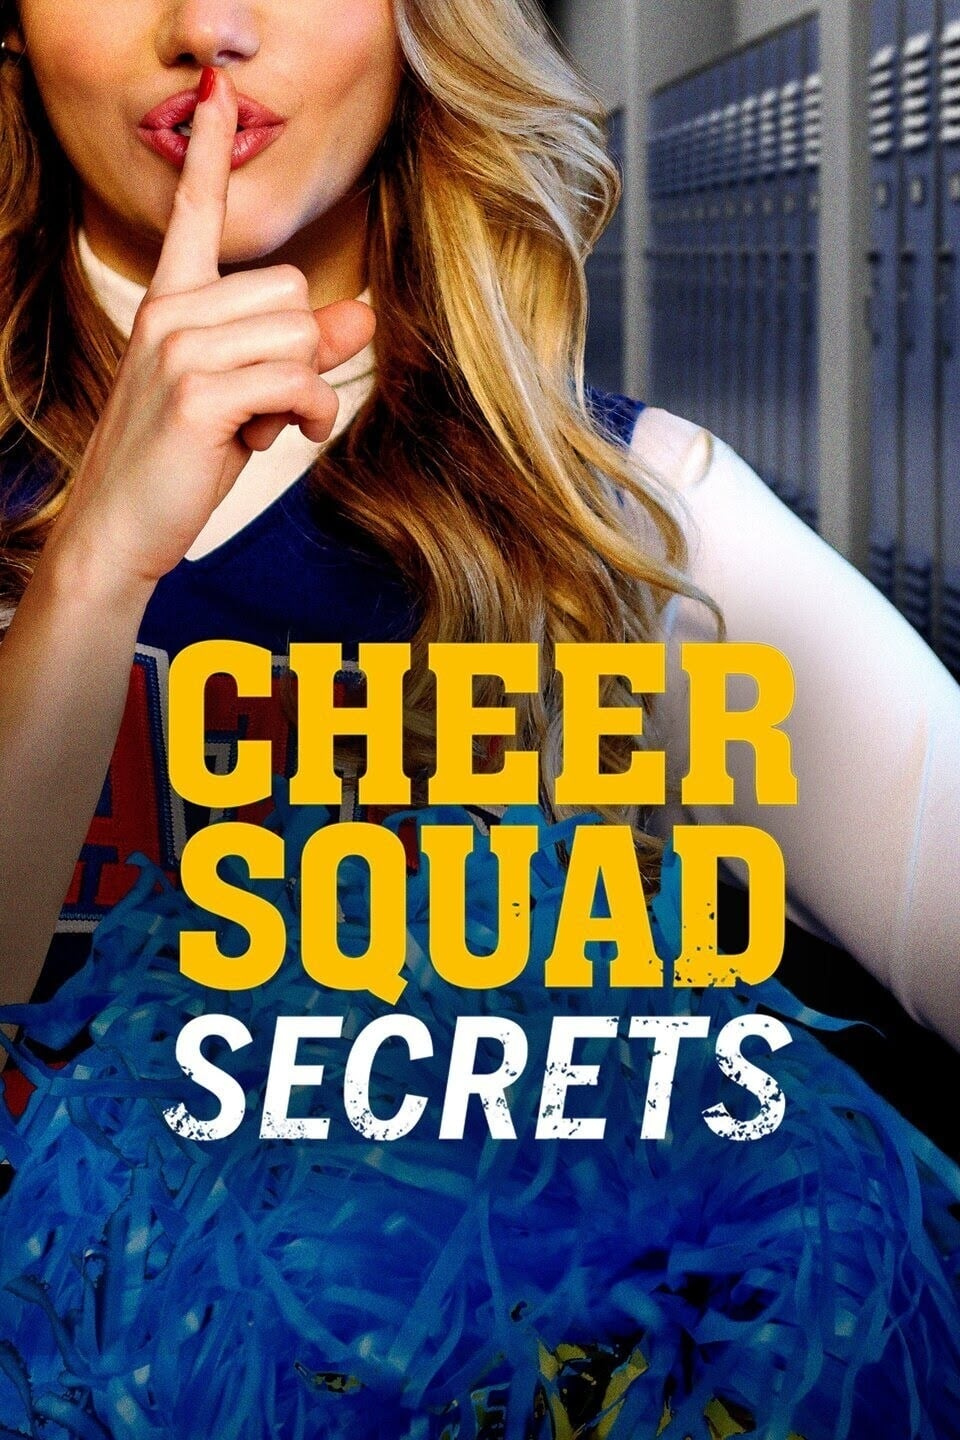 Killer-Cheerleader-Cheer-Squad-Secrets-2020-4536